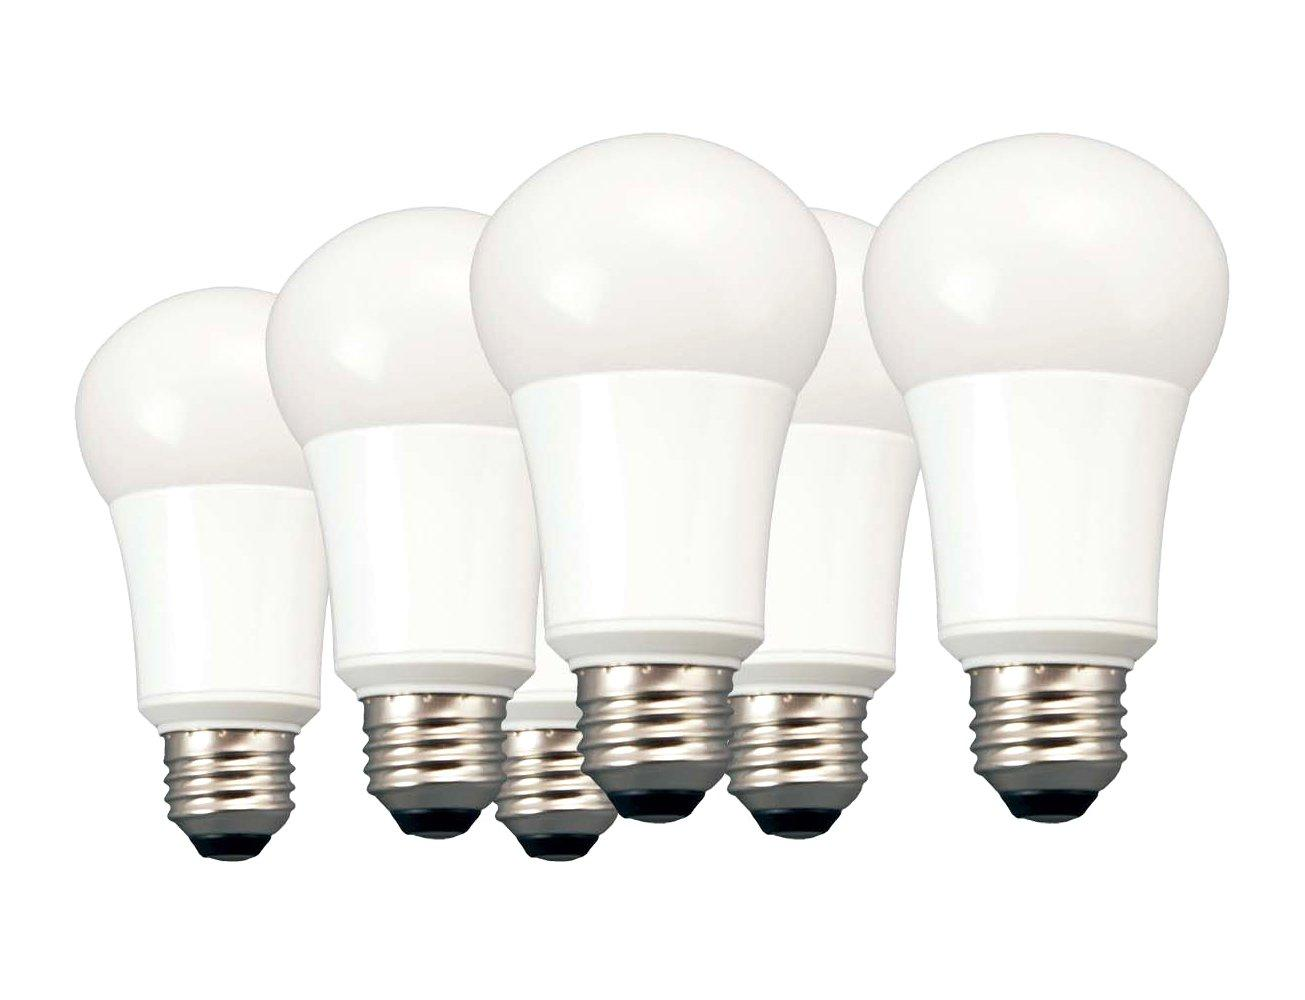 TCP 40 Watt LED A19, 6 Pack, Soft White, Non-Dimmable Light